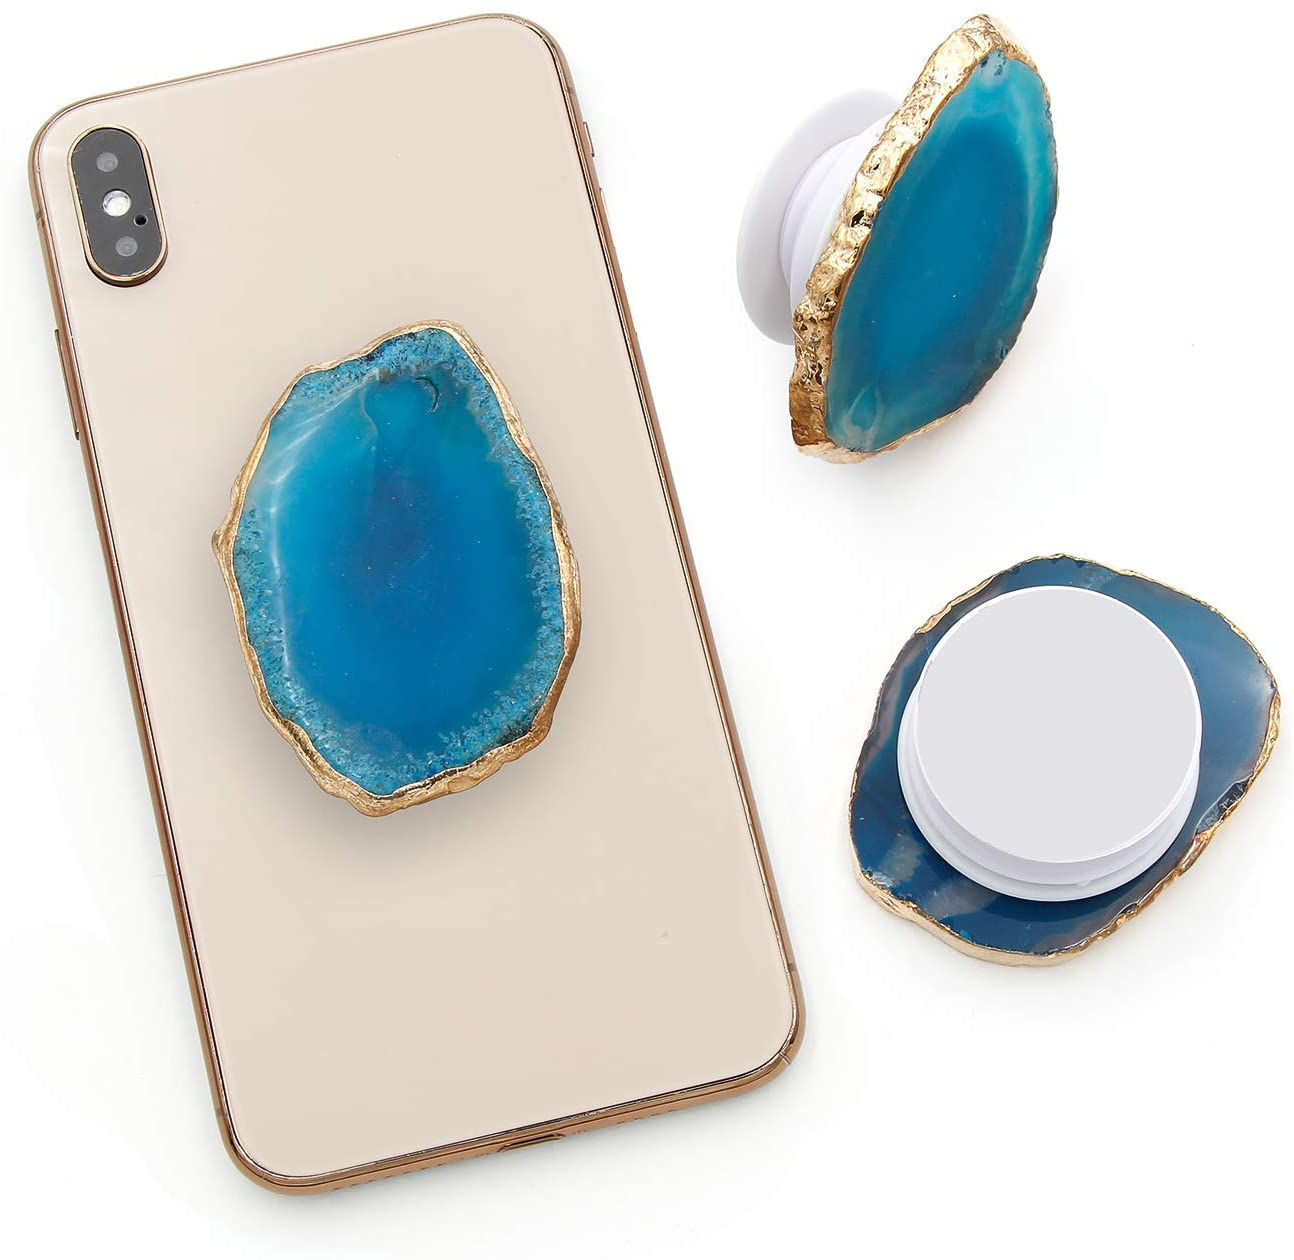 Agate Crystal Phone Grip Stand Mount Holder for Cellphone, Tablet (Blue)